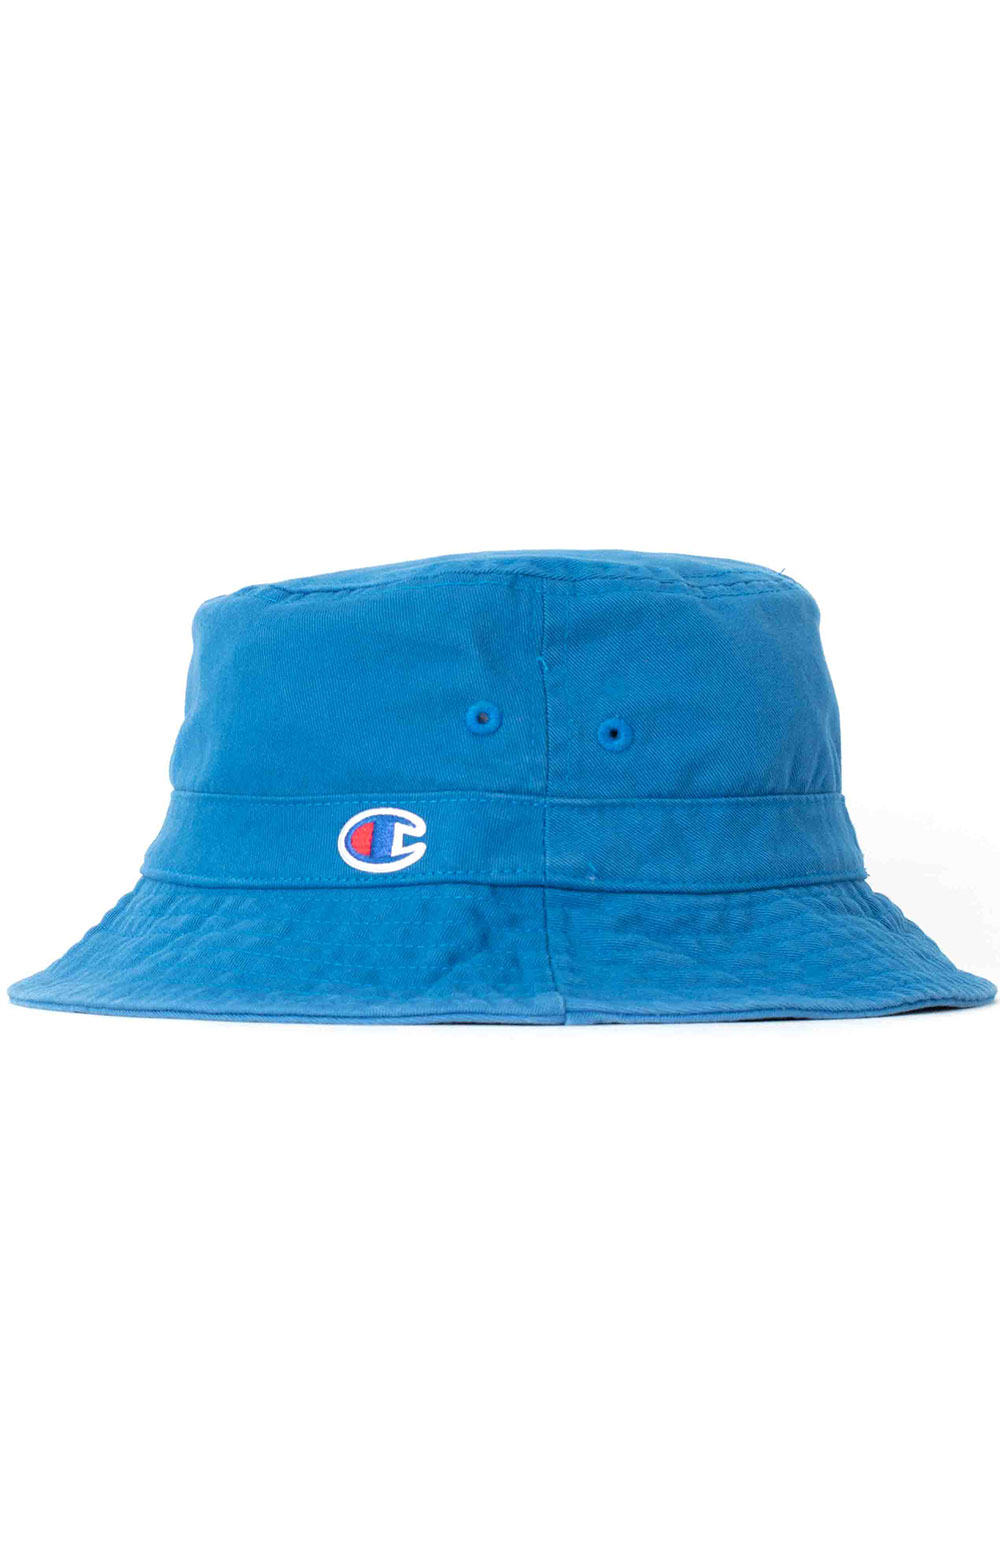 Garment Washed Relaxed Bucket Hat - Living In Blue